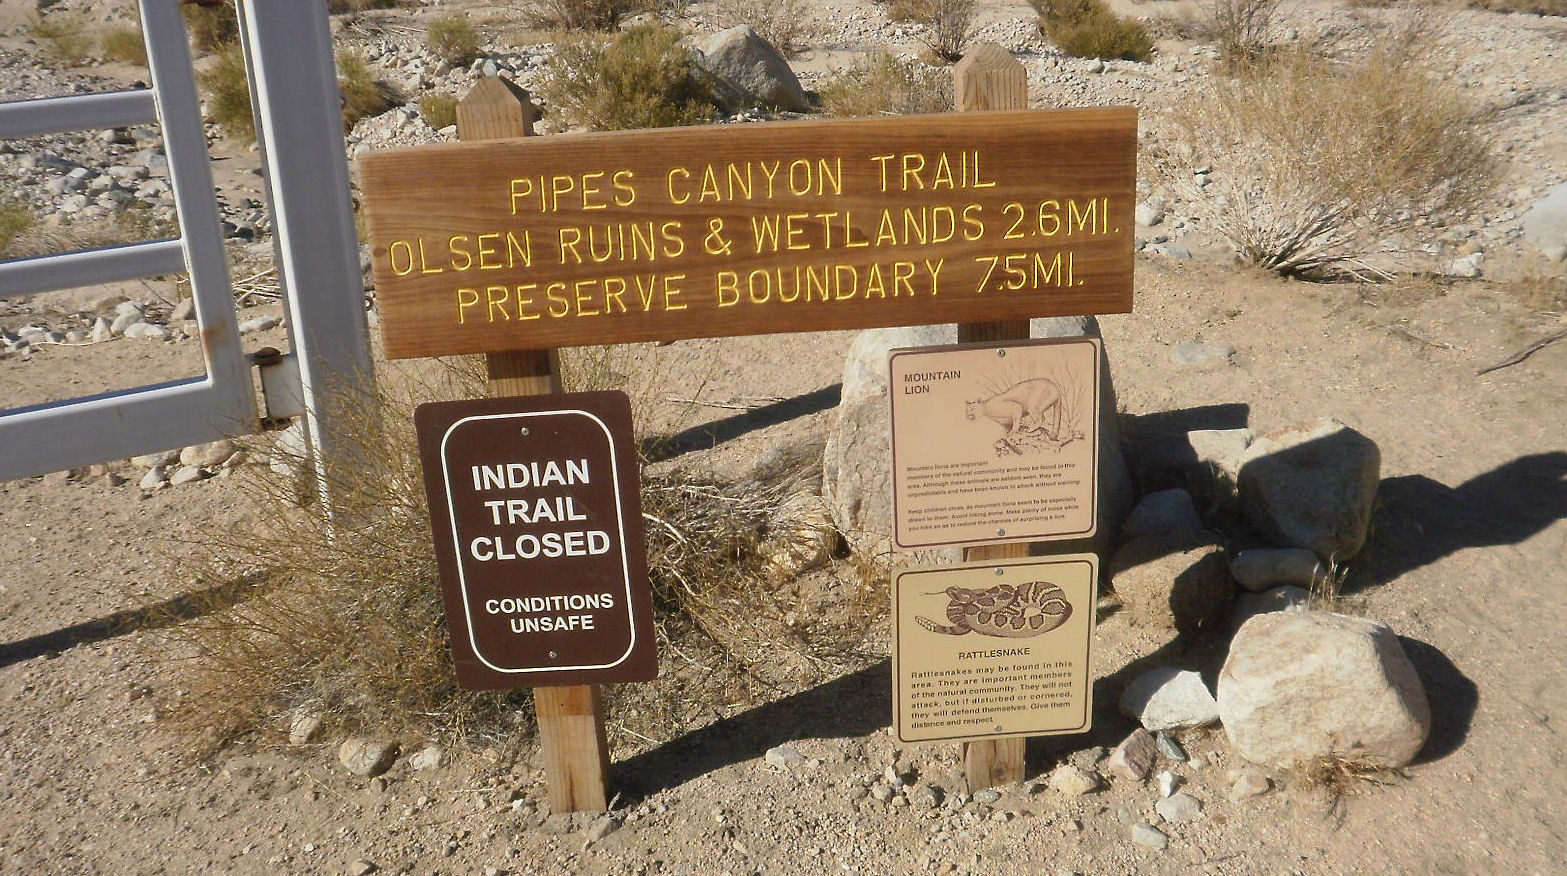 Pipes Canyon